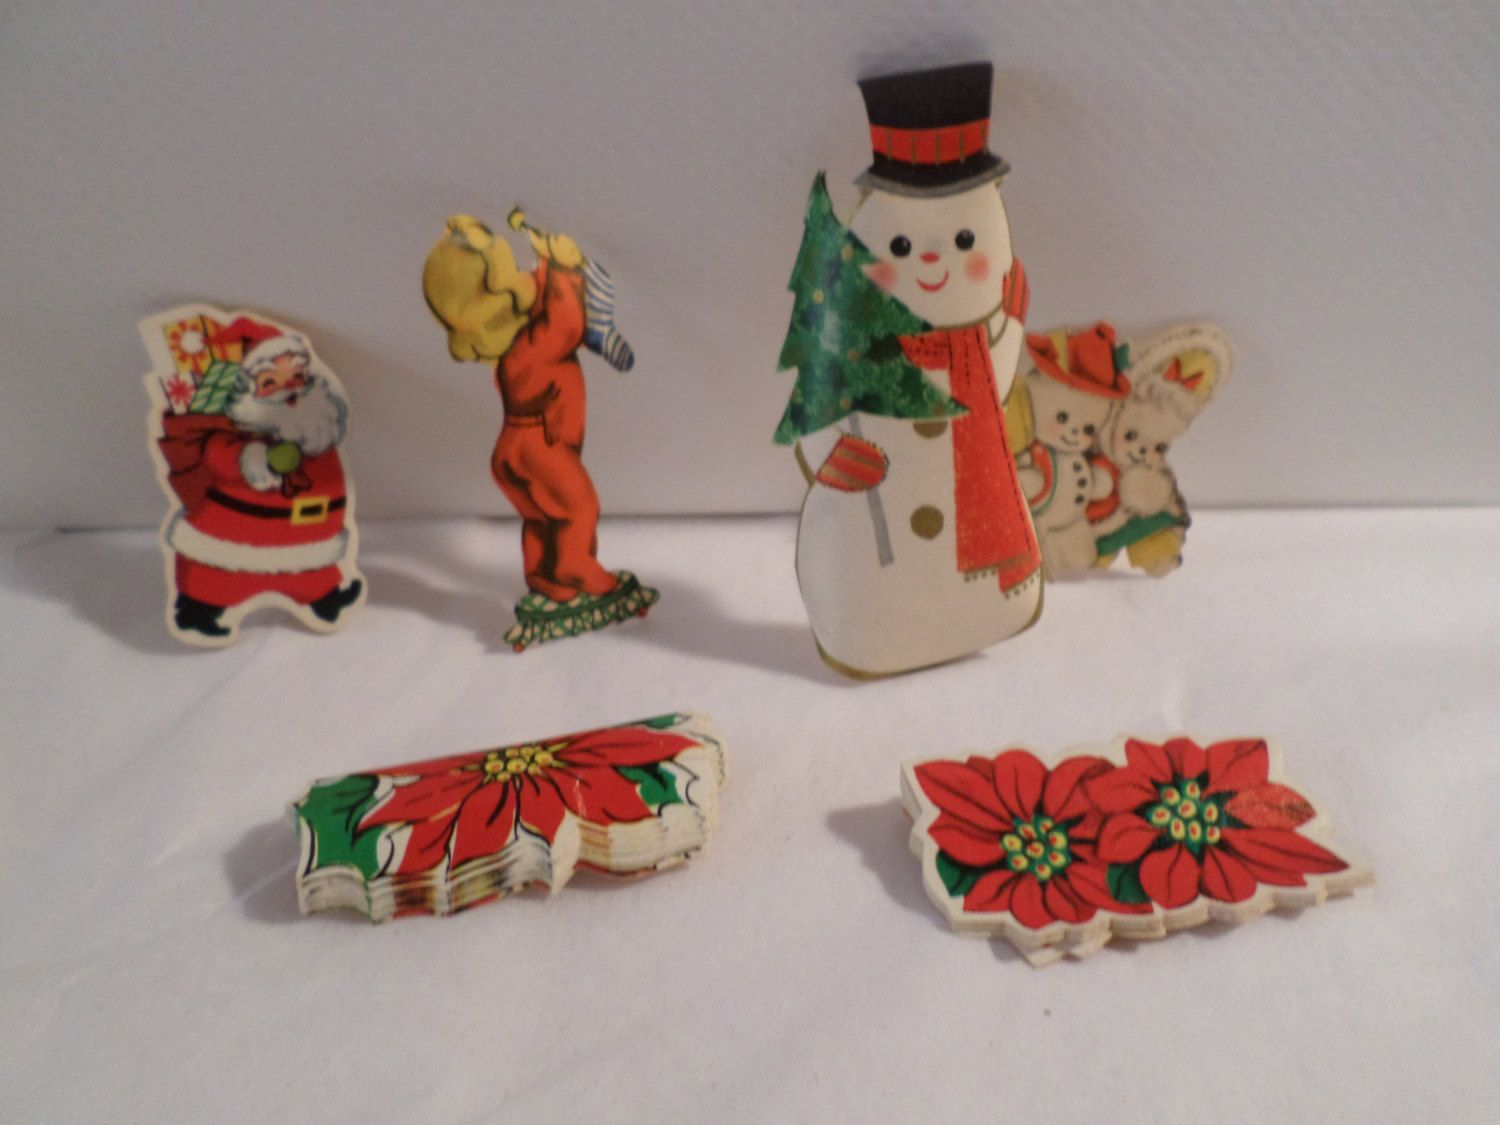 Vintage christmas decorations 1950s - Vintage Hallmark Hallmark Stickers Hallmark Seals 1950s Christmas Christmas Decorations Snowman Stickers Santa Paper Stickers